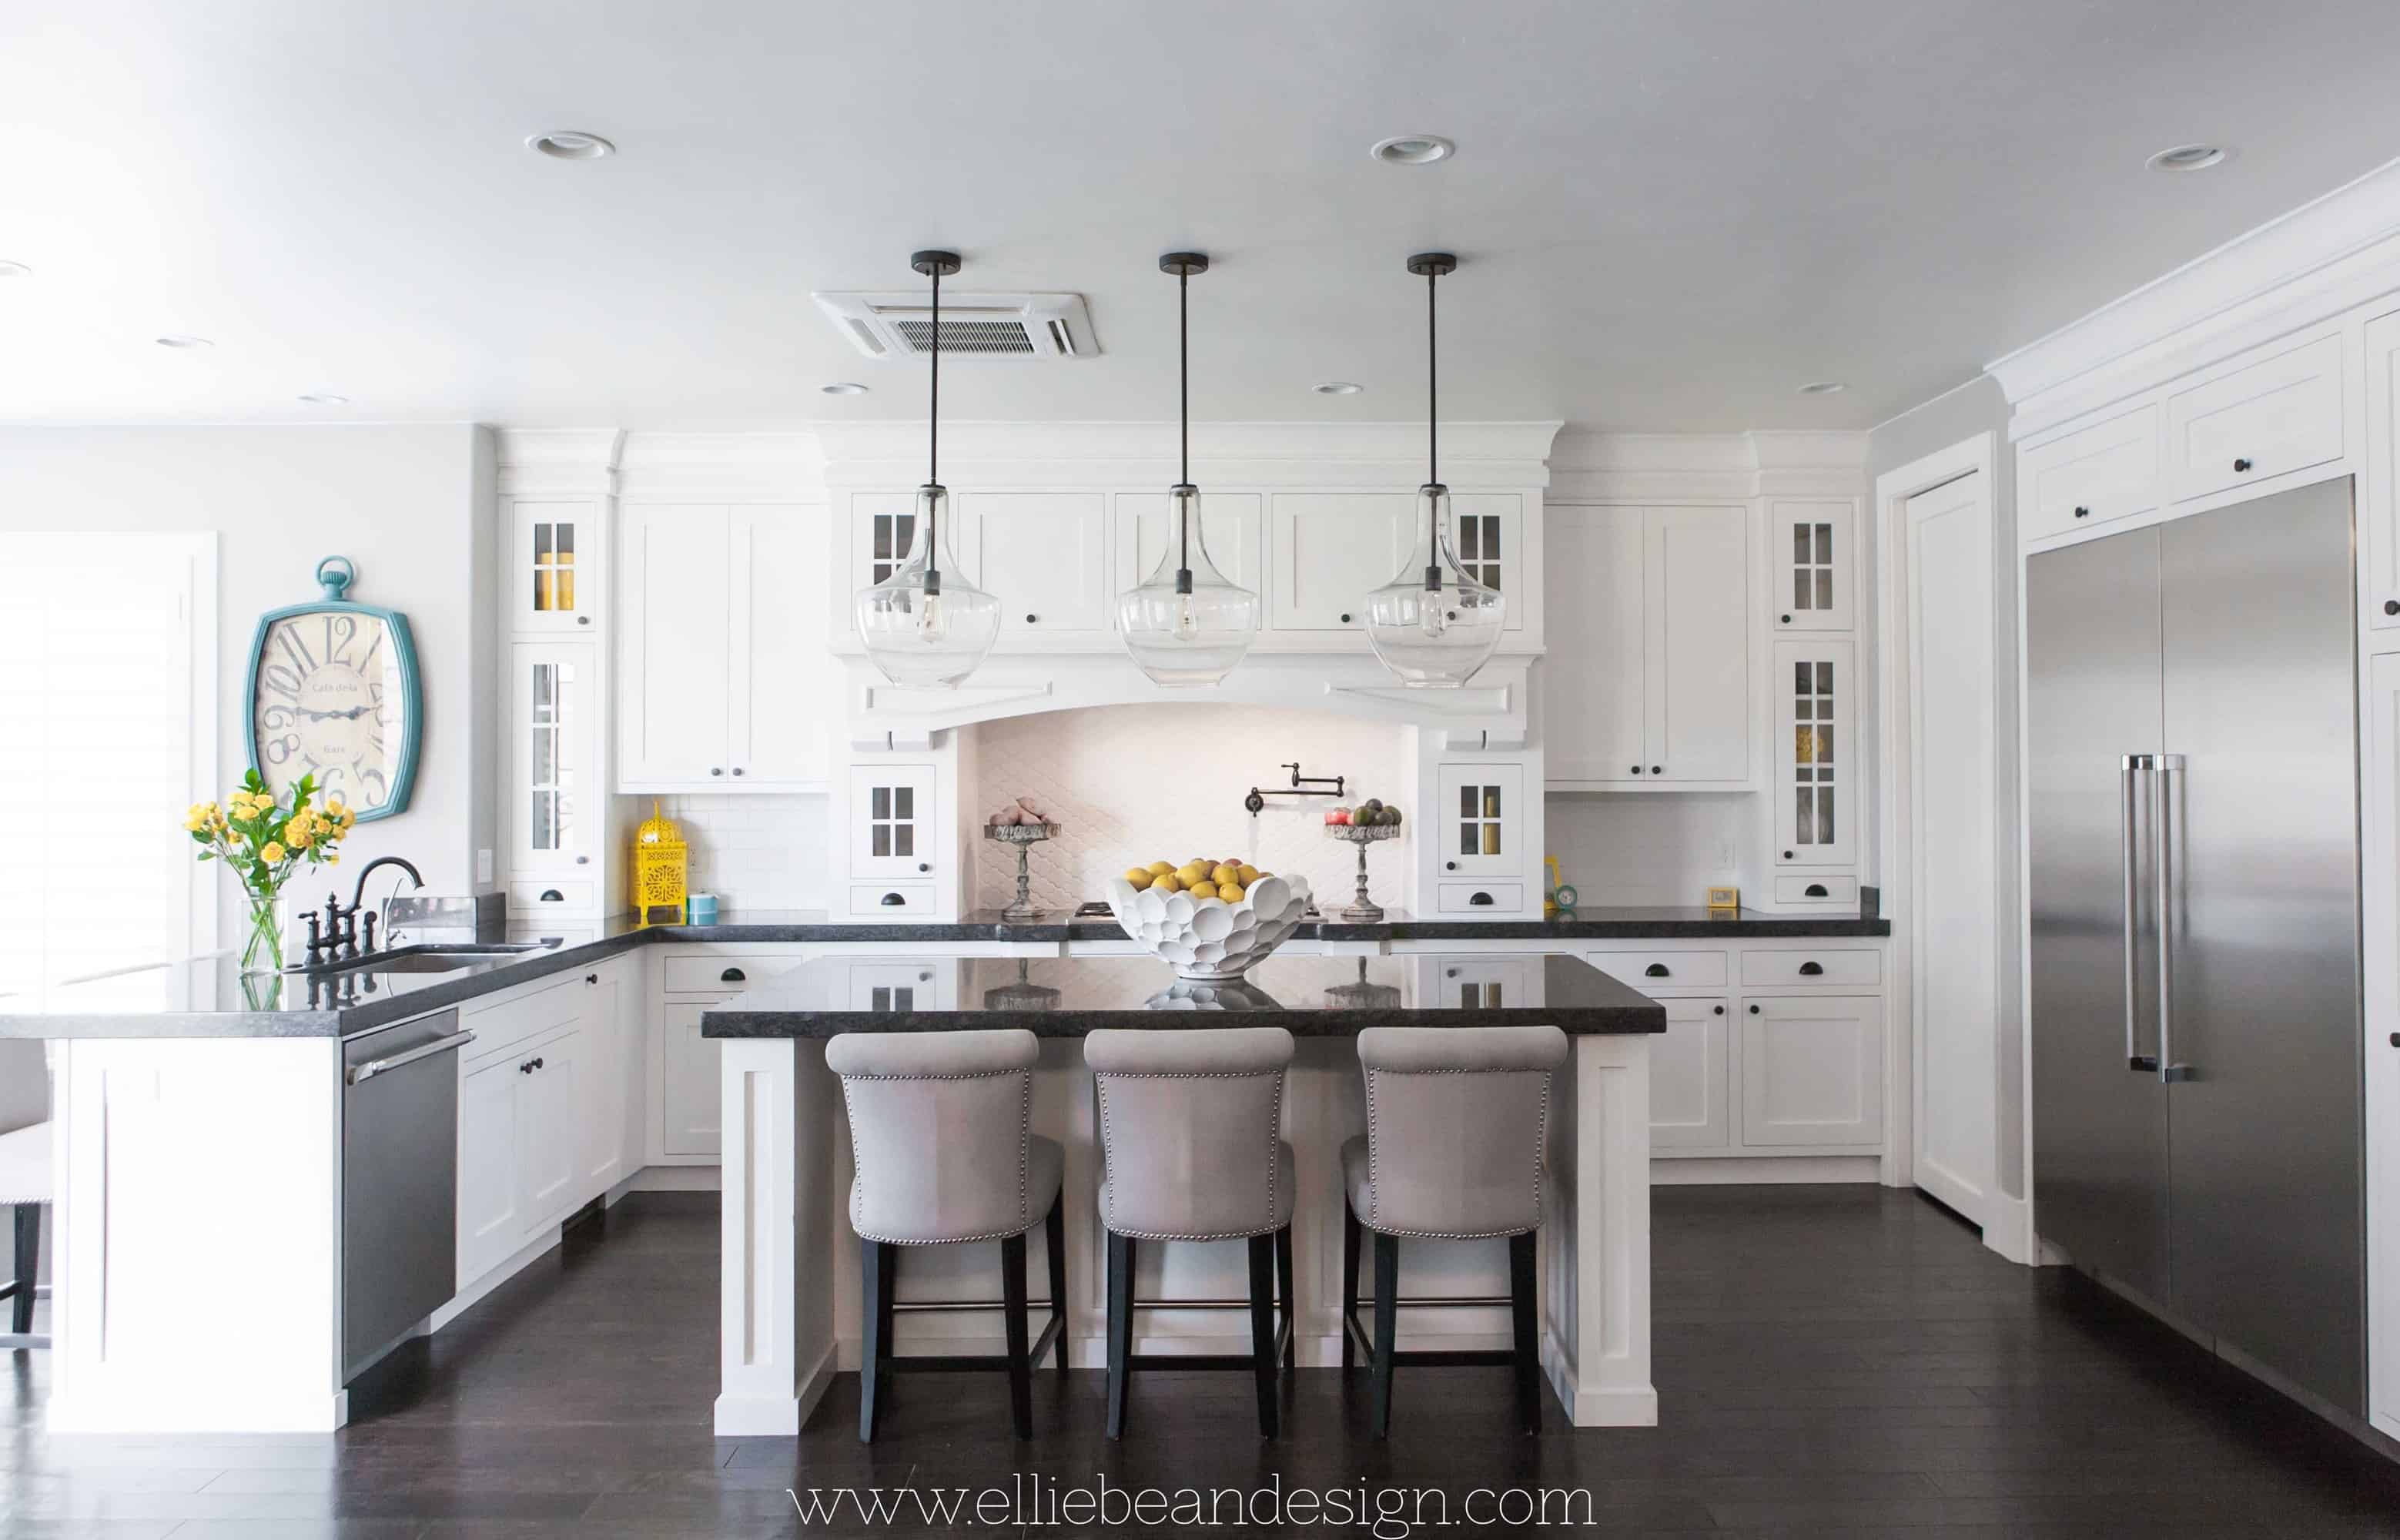 Incroyable 10 Rules To Create The Perfect White Kitchen! Www.overthebigmoon.com